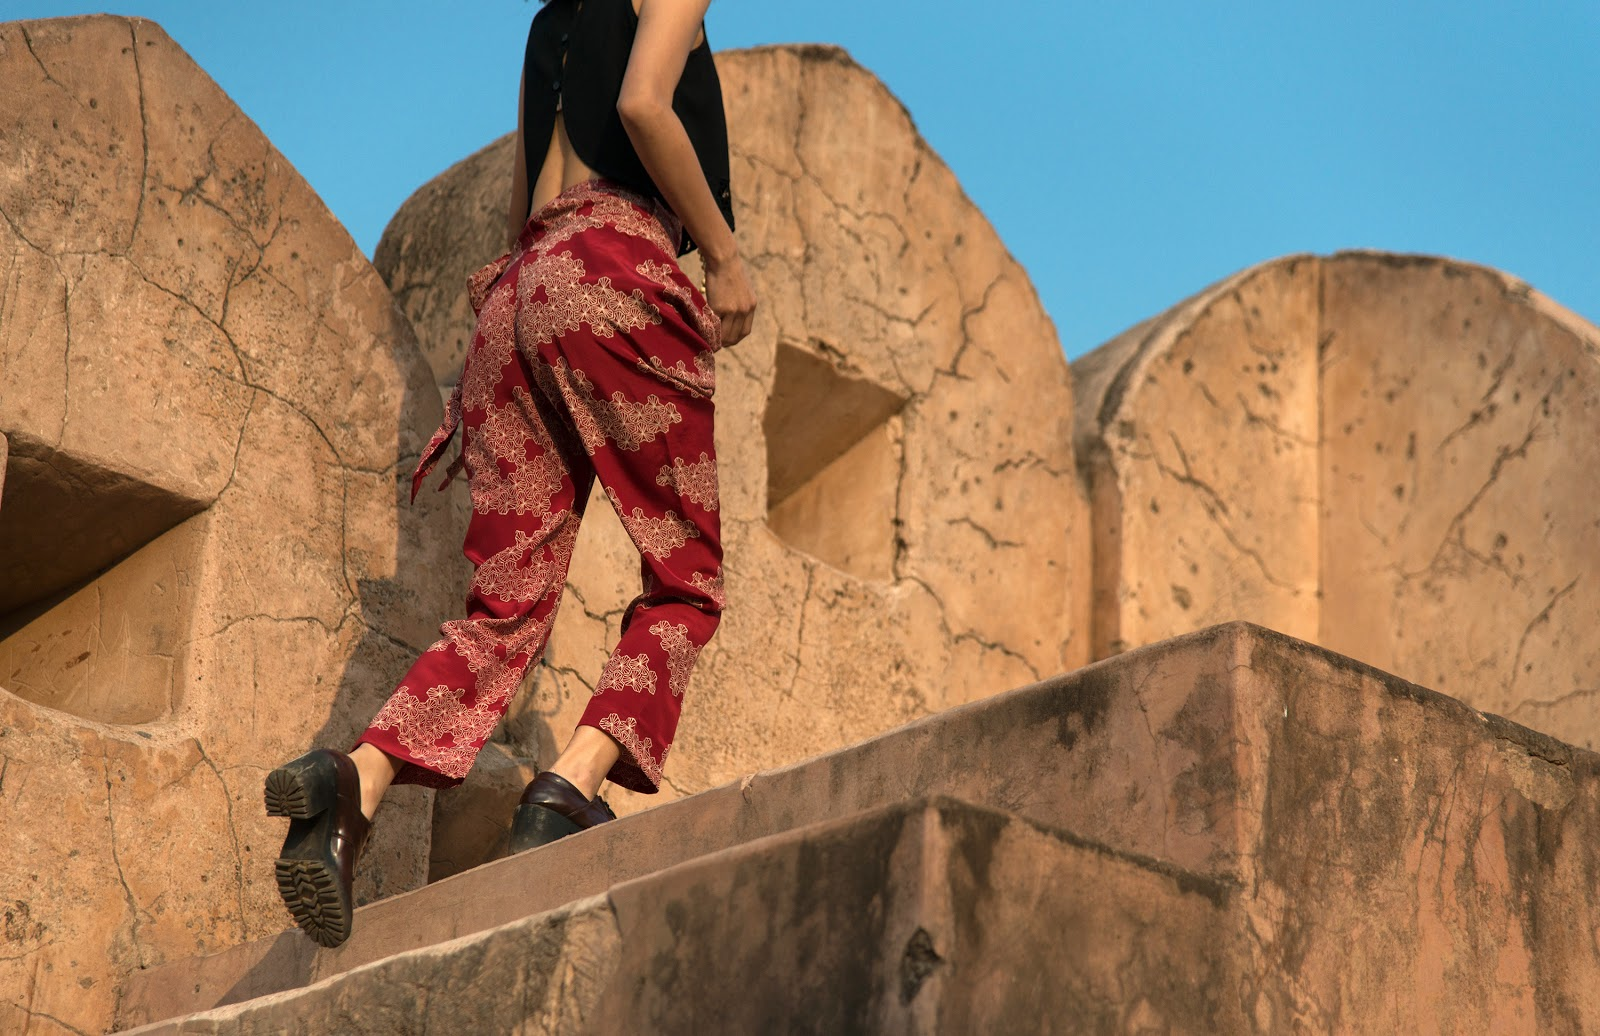 A lady in black shirt and red printed pants climbing up a flight of stairs